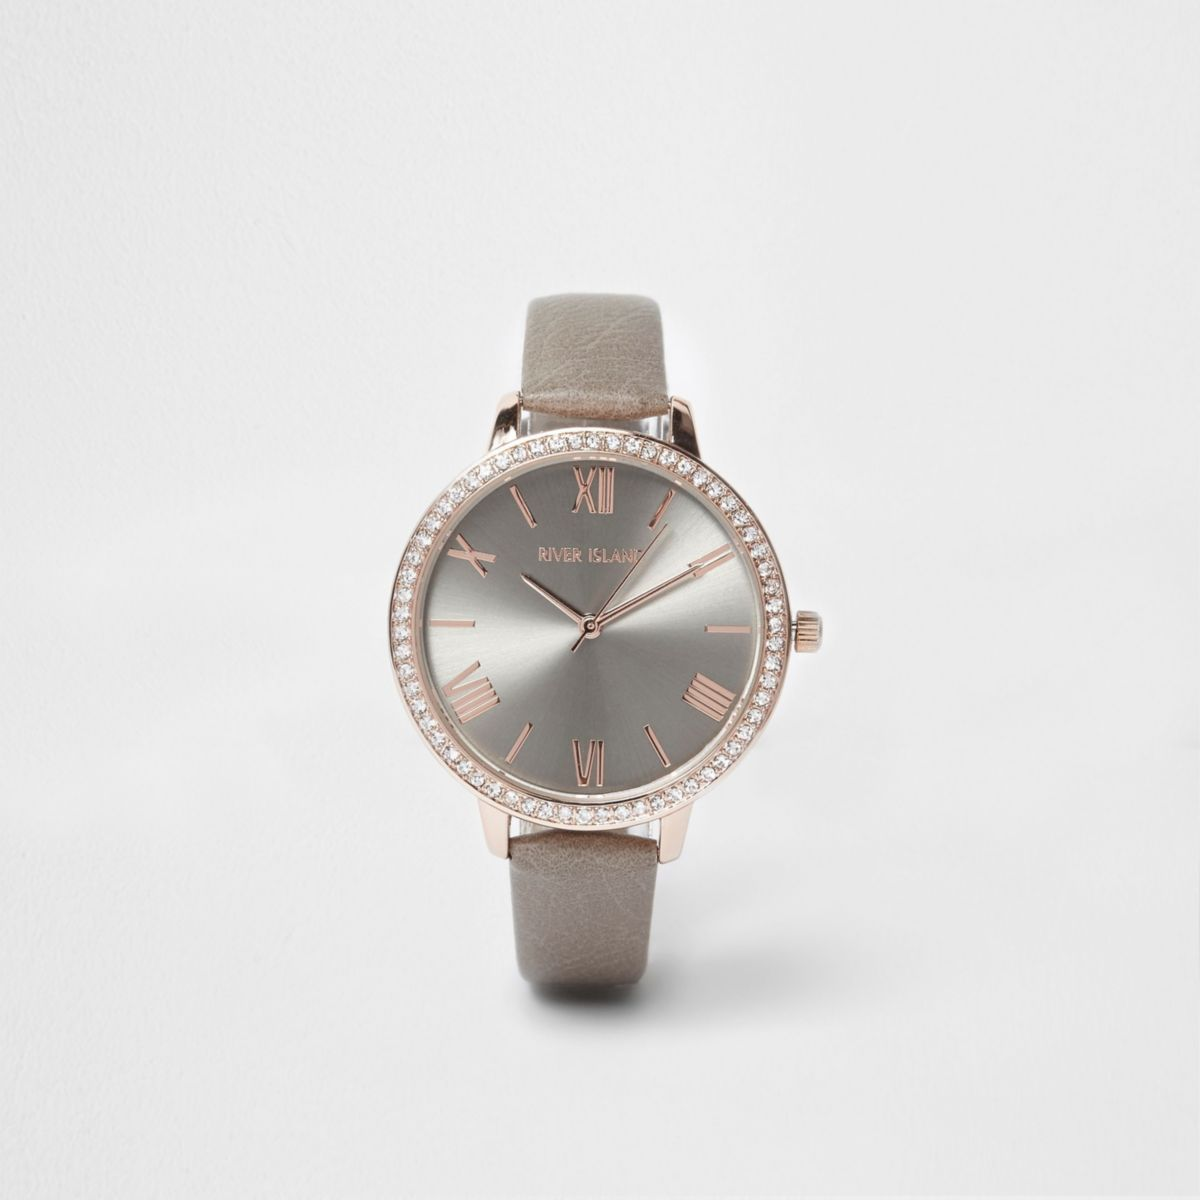 Grey and rose gold tone rhinestone face watch